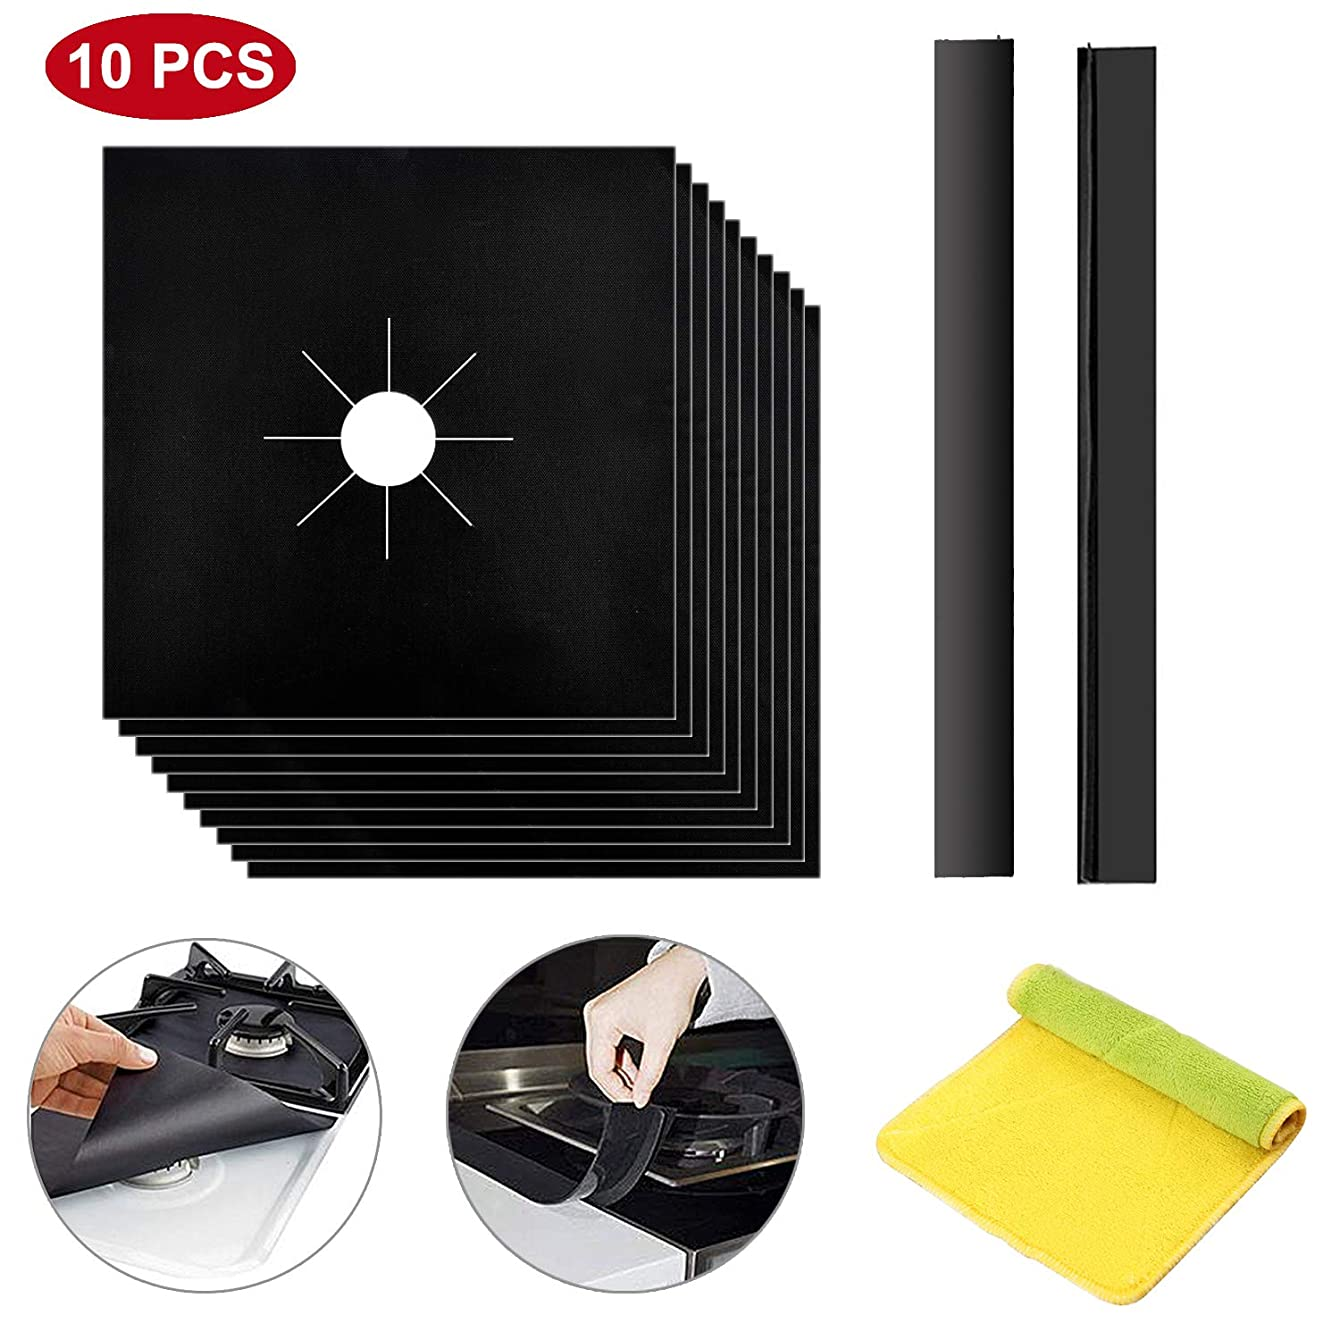 Stove Burner Covers, 10 Pack Reusable Gas Range Protectors + 2 Pack Stove Counter Gap Cover Kitchen Cleaning Kit for Cooktops, Non-Stick Fast Clean Liners Easy to Clean, Black